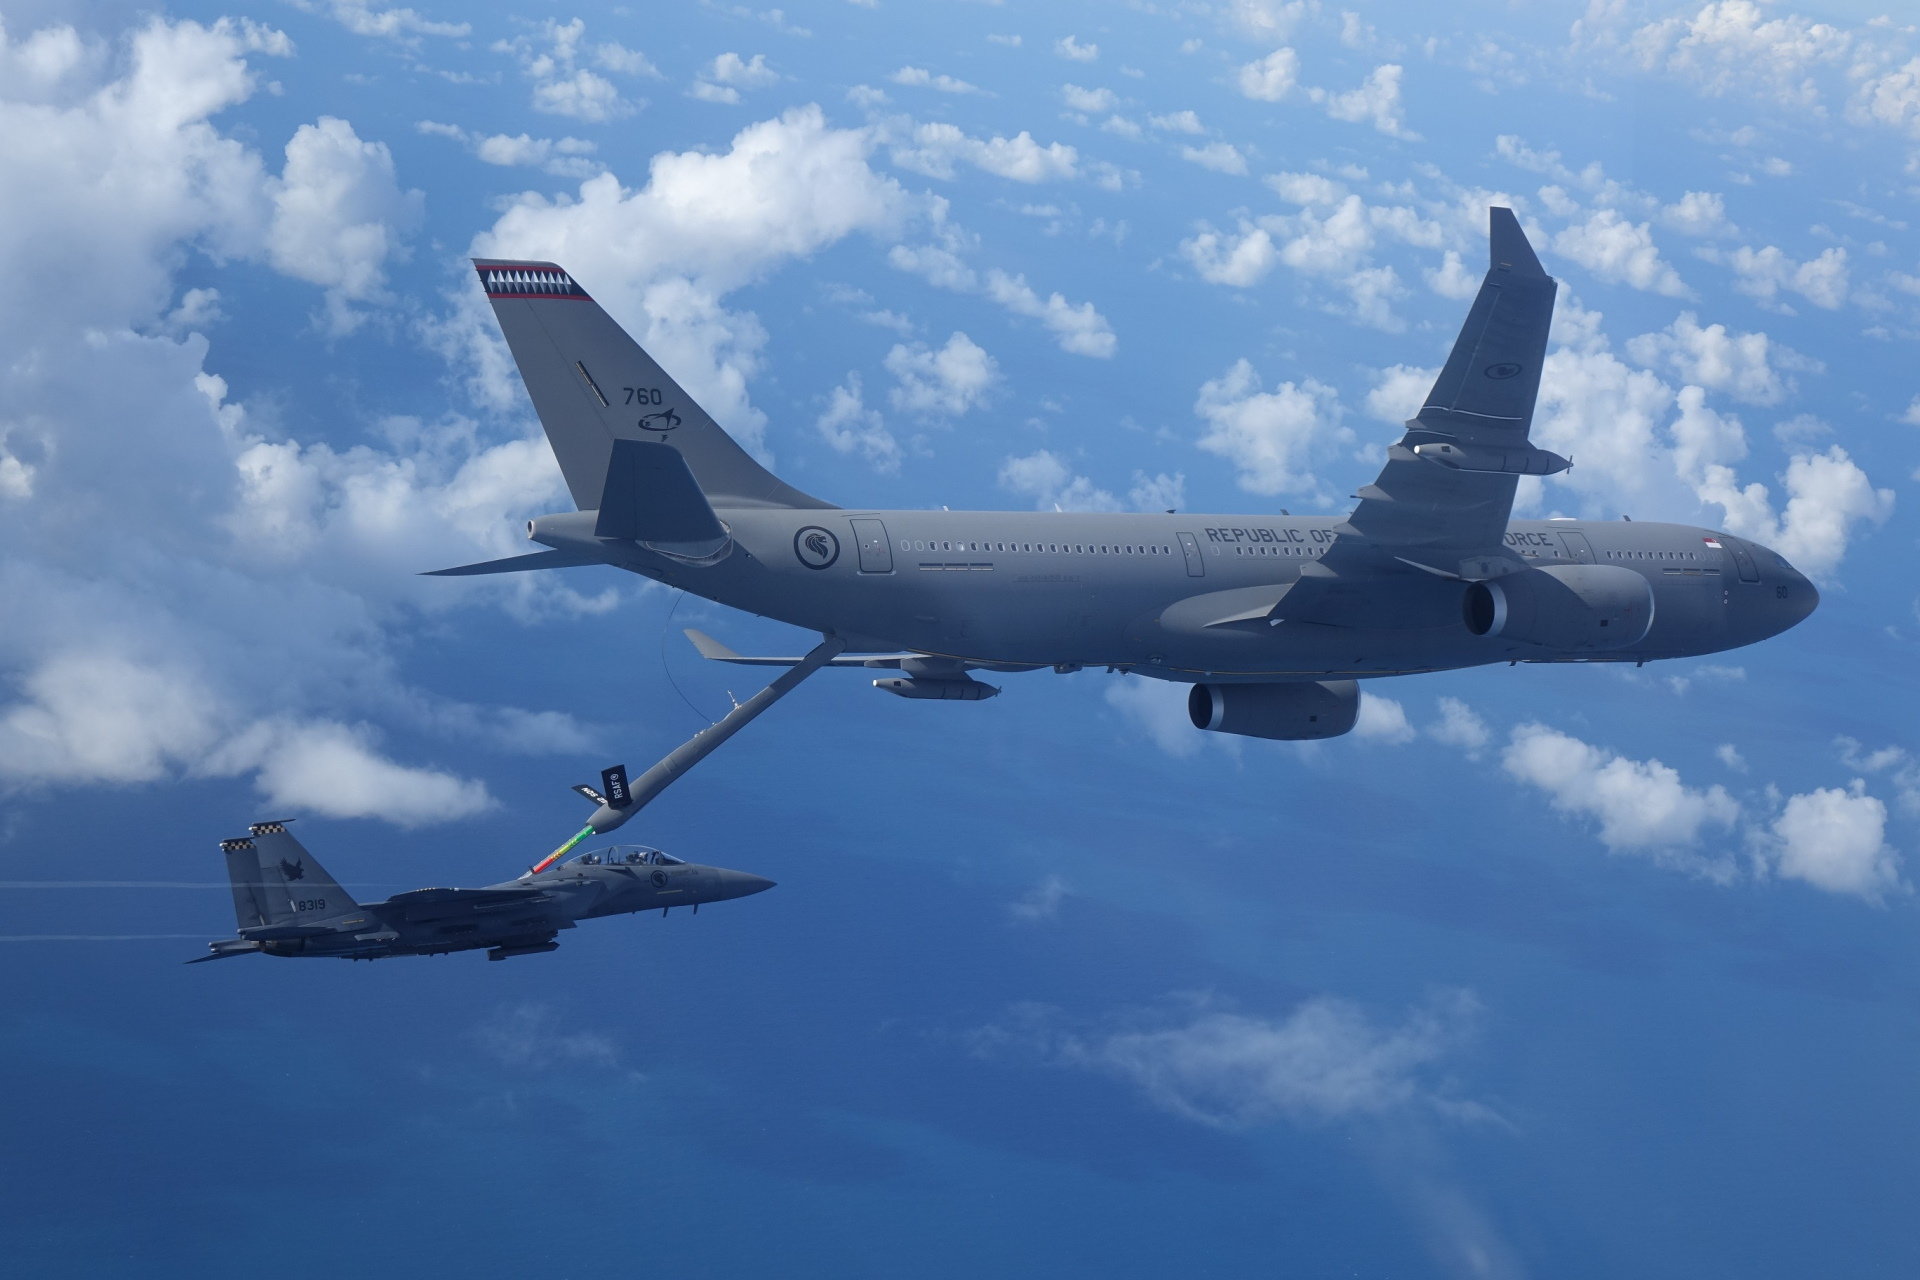 Republic of Singapore Air Force's A330 MRTT Tanker Aircraft Attains Full Operational Capability